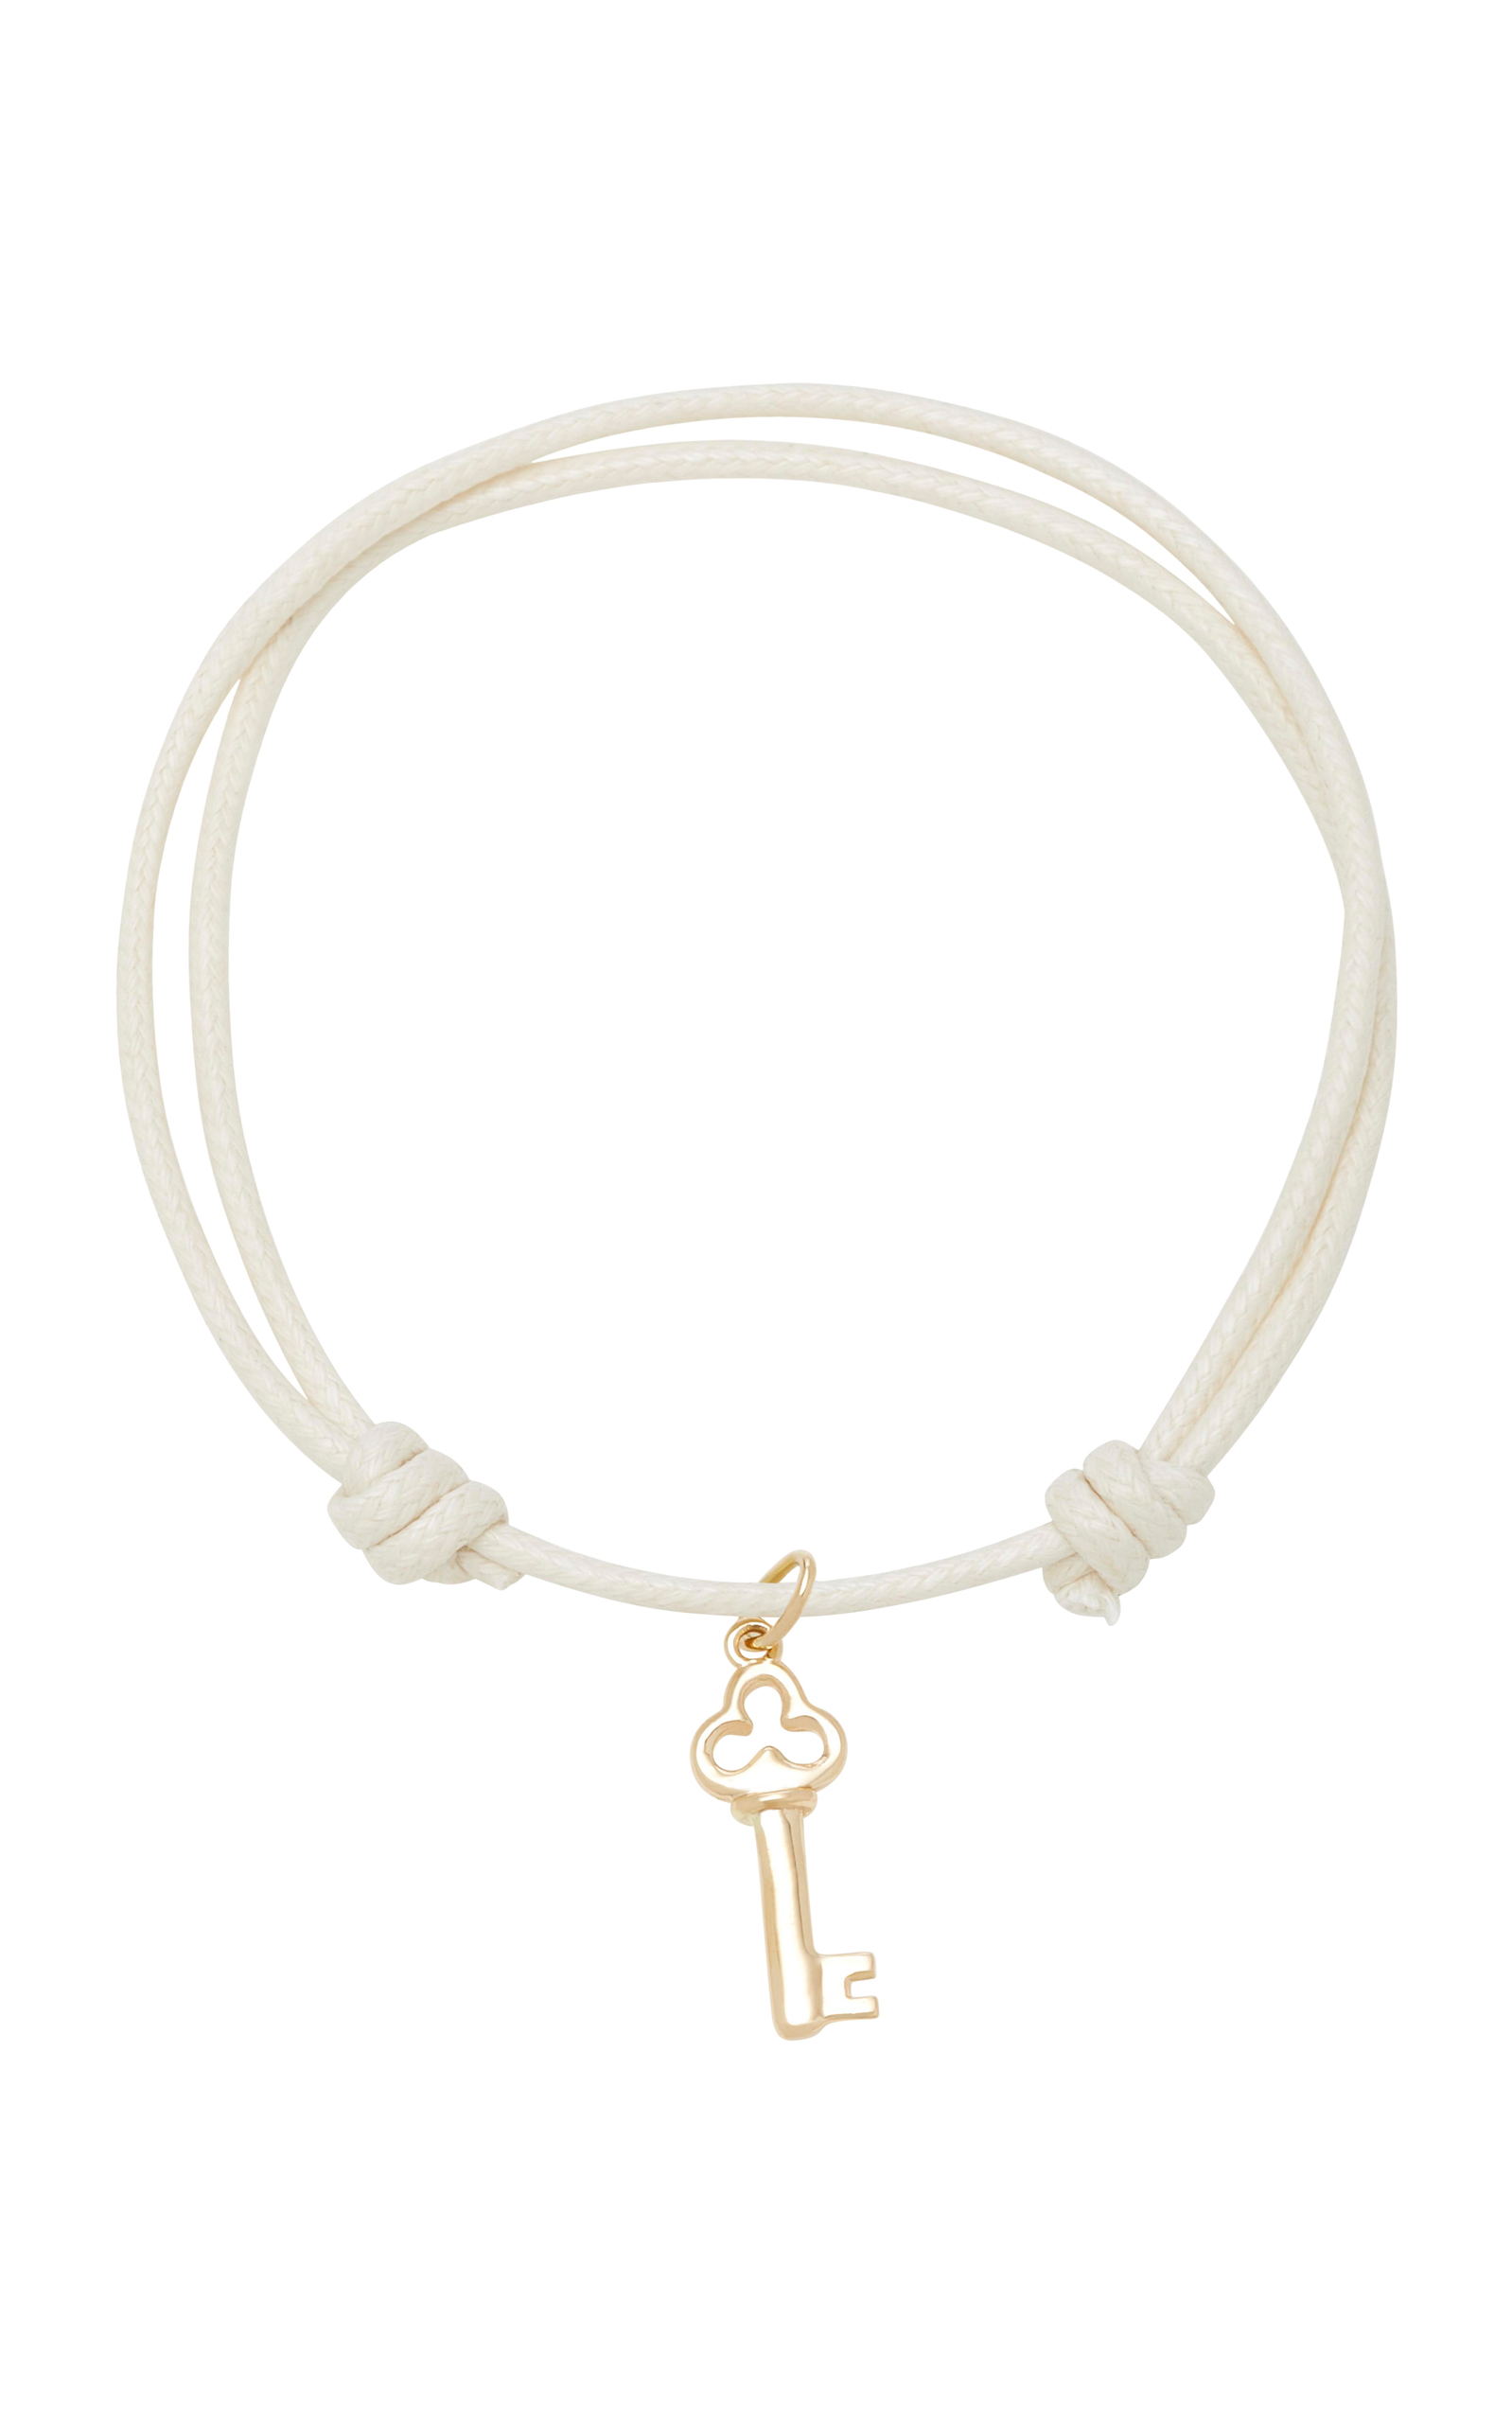 WITH LOVE DARLING KEY TO MY HEART 18K GOLD CORD BRACELET